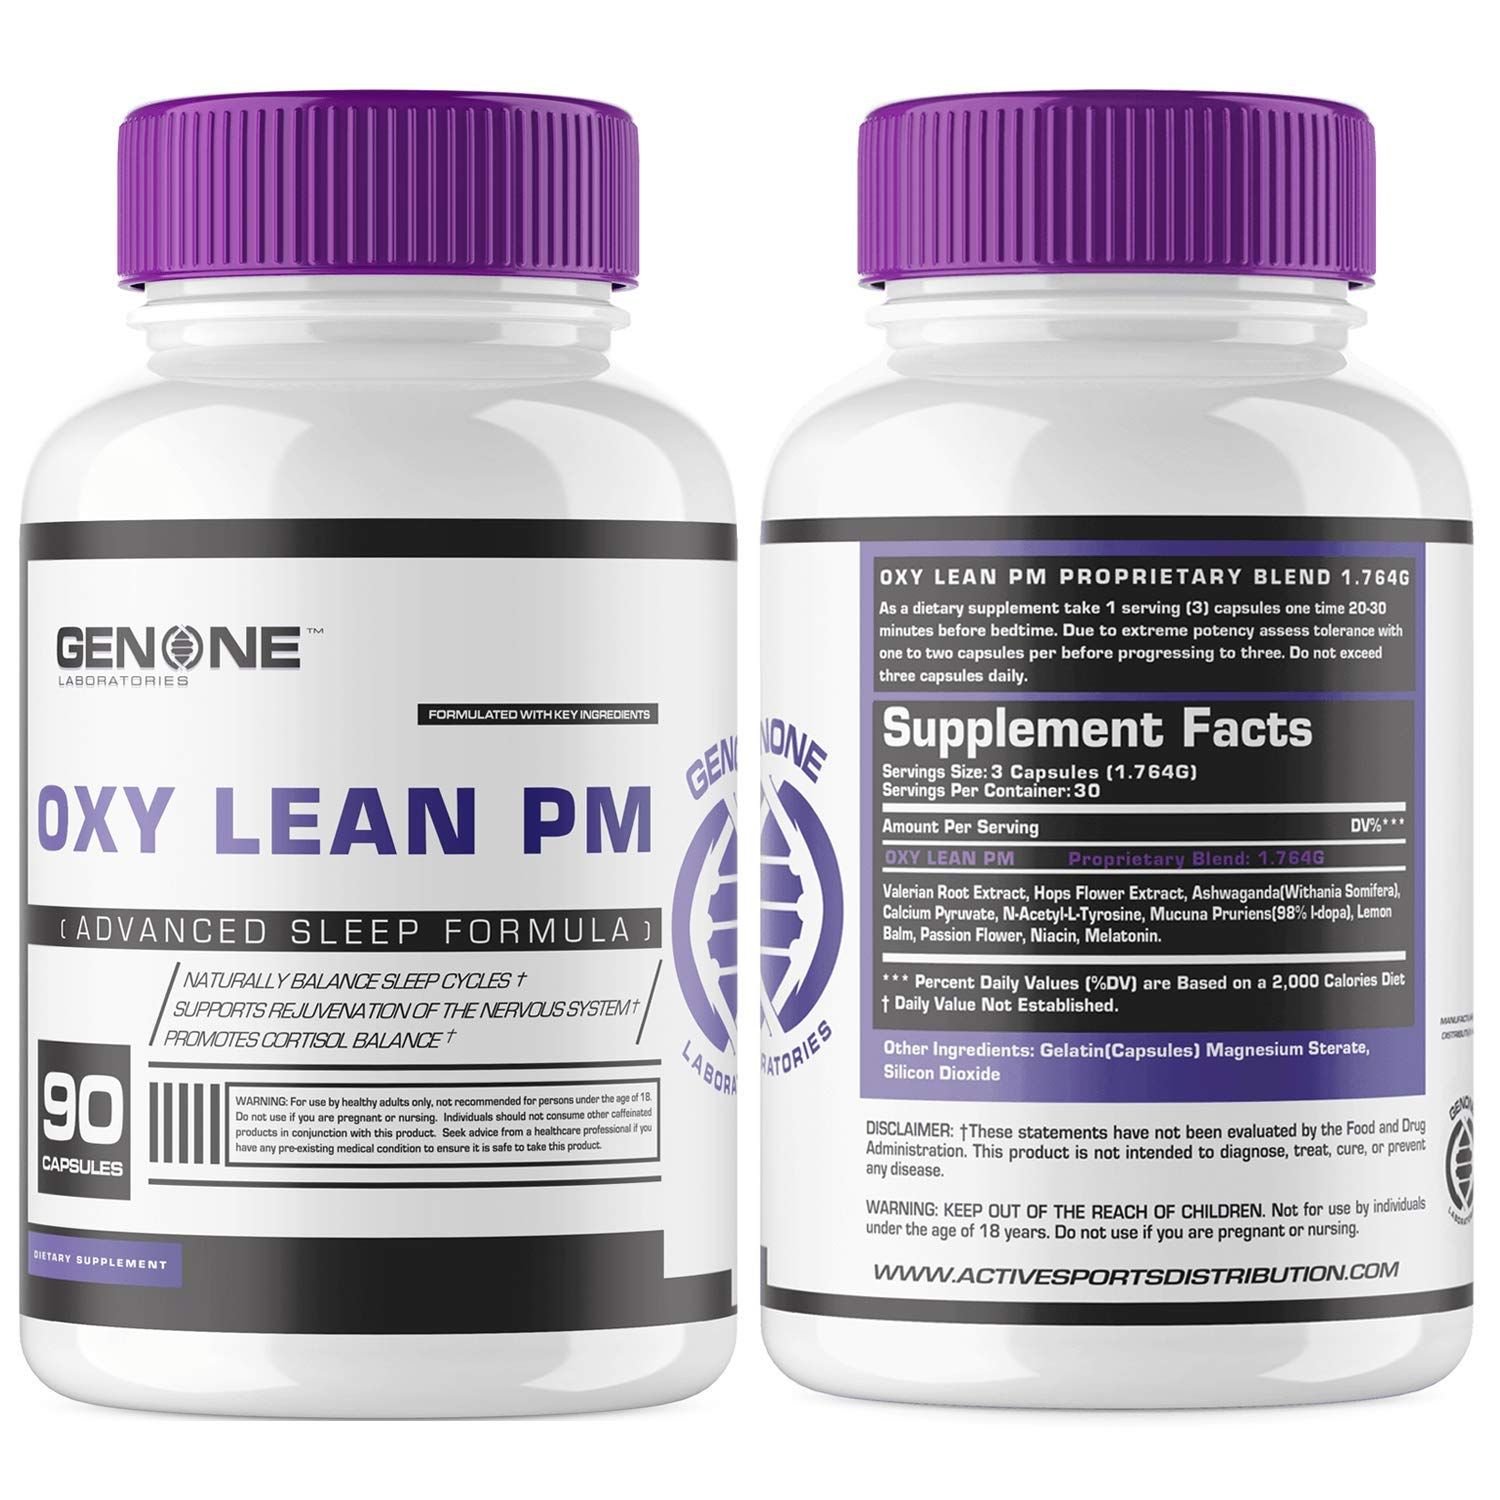 Oxylean Pm Sleep Formula All Natural Ingredients With Melatonin Ashwaganda Passion Flower Extract Herbal Supple Herbal Supplements Health Supplements Herbalism